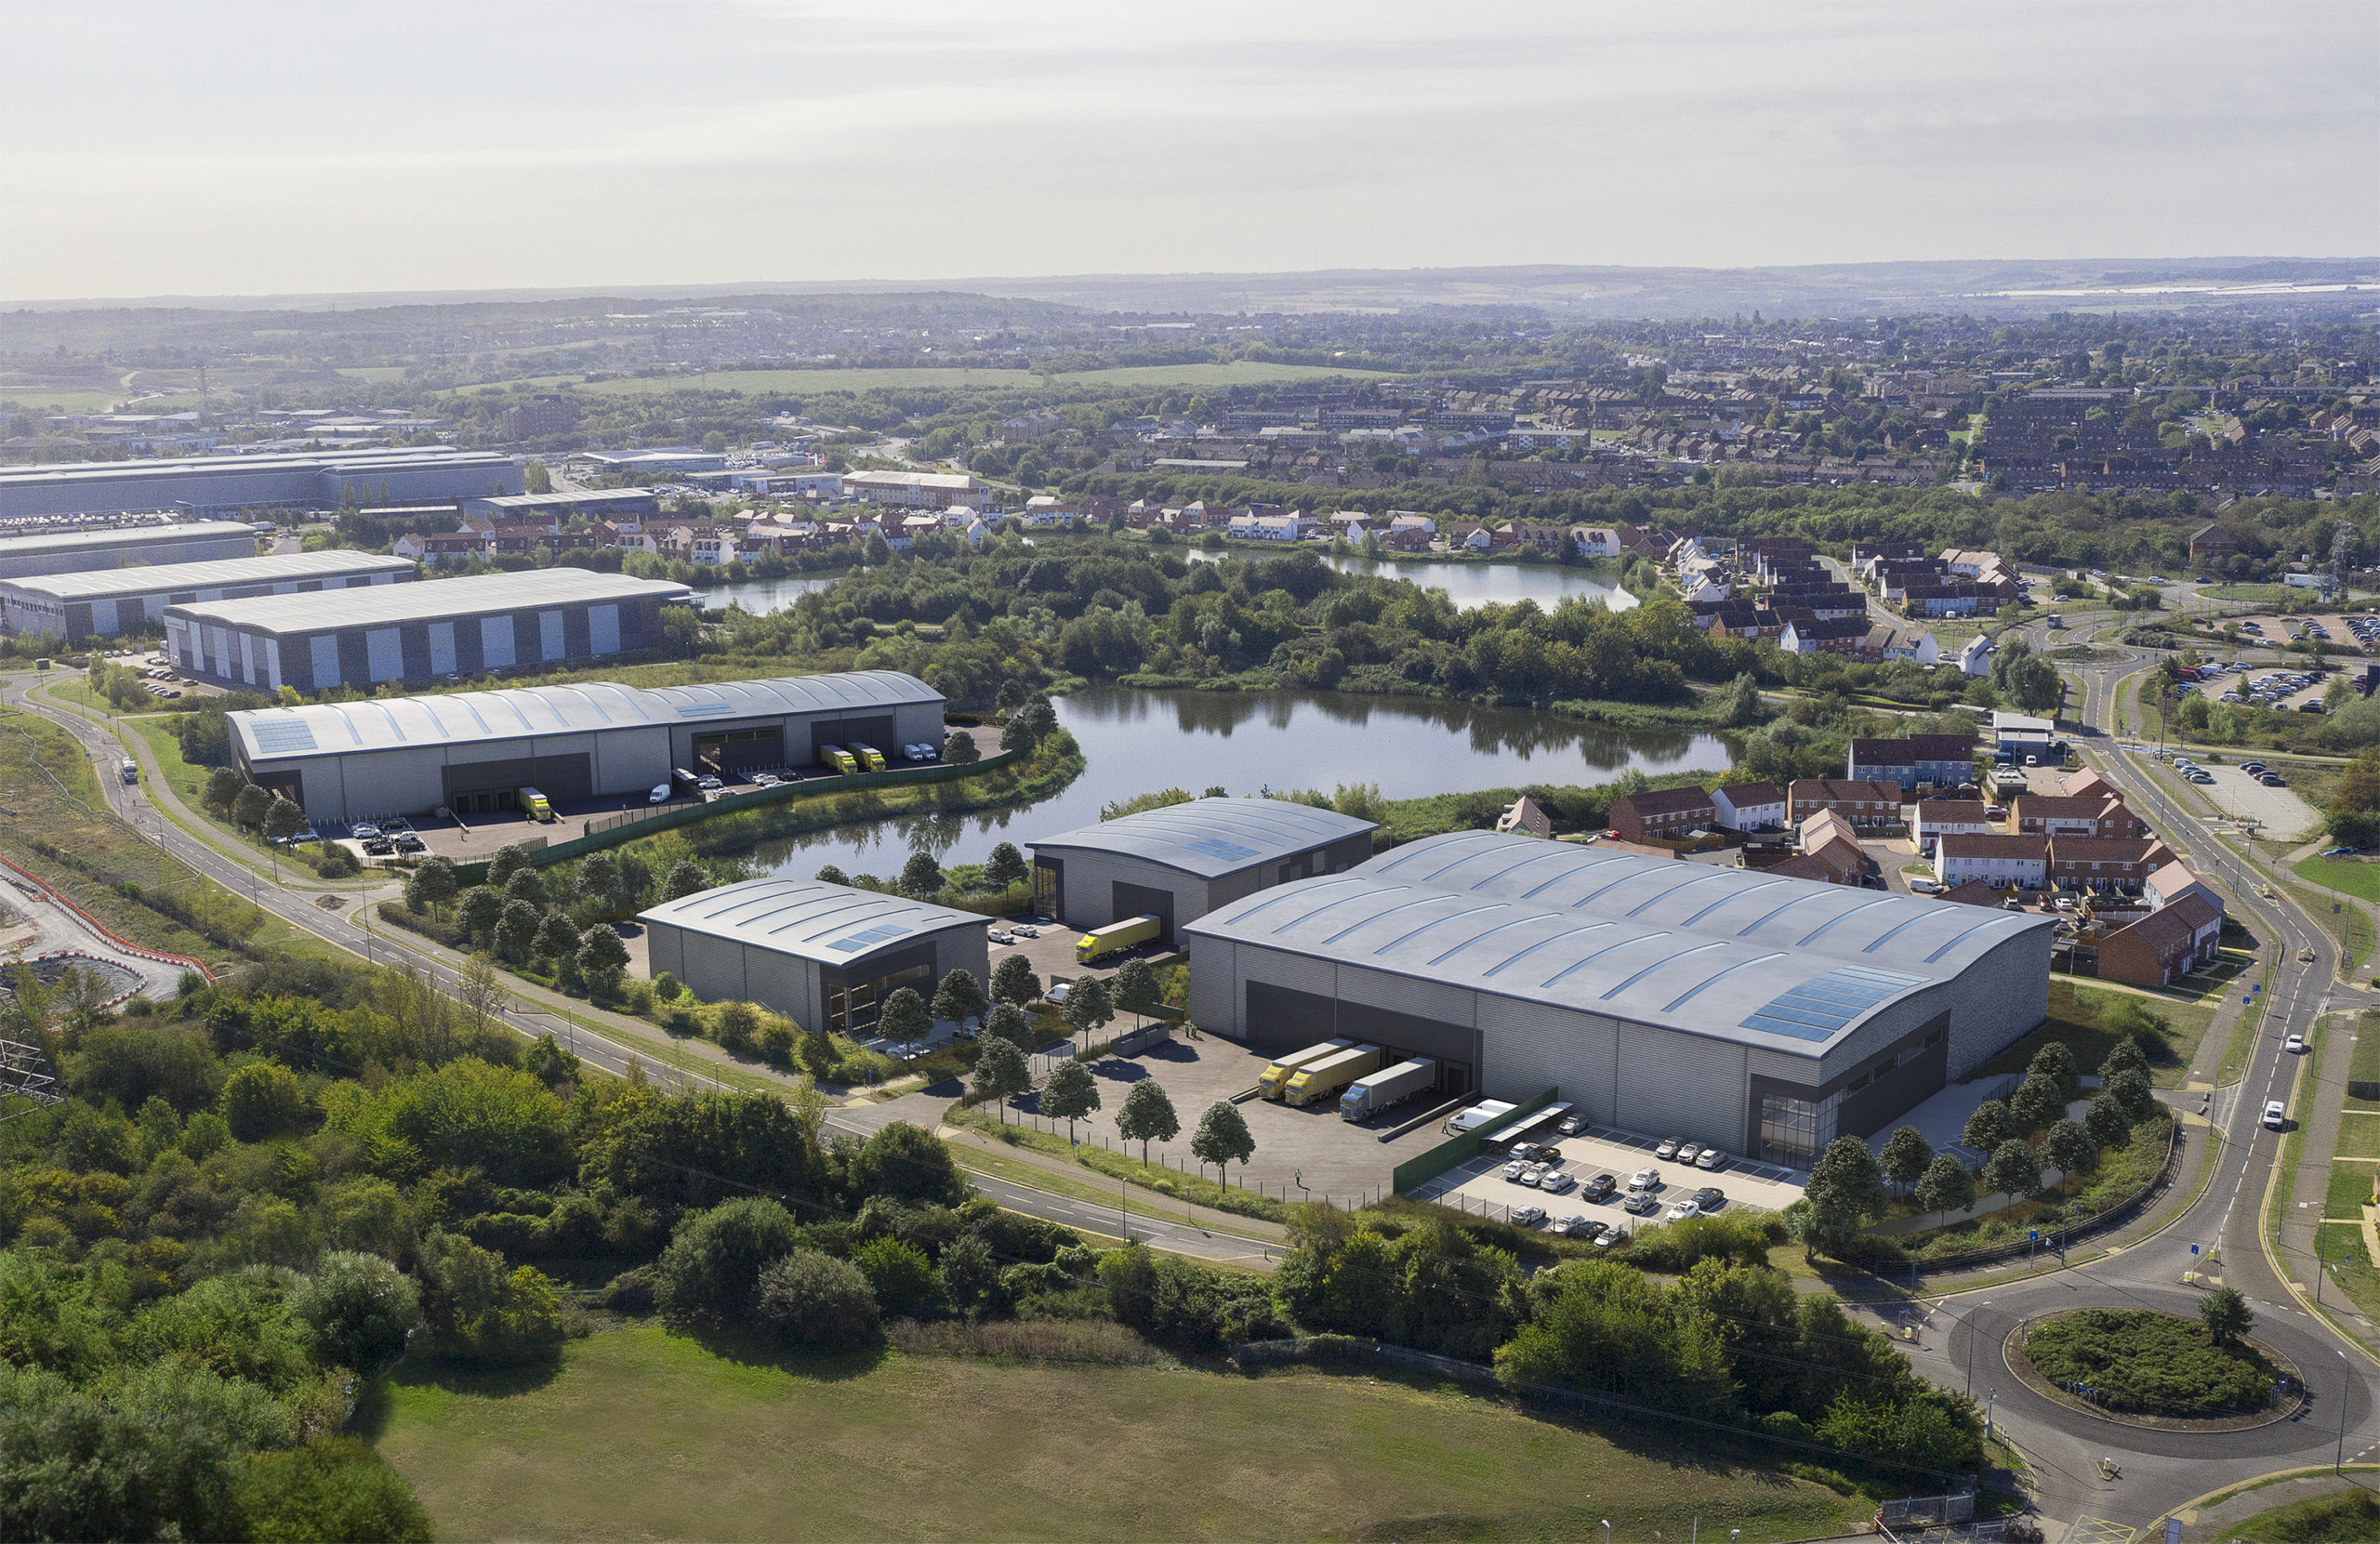 RPMI Railpen and Wrenbridge Secure Consent for Major Dartford Warehouse Development